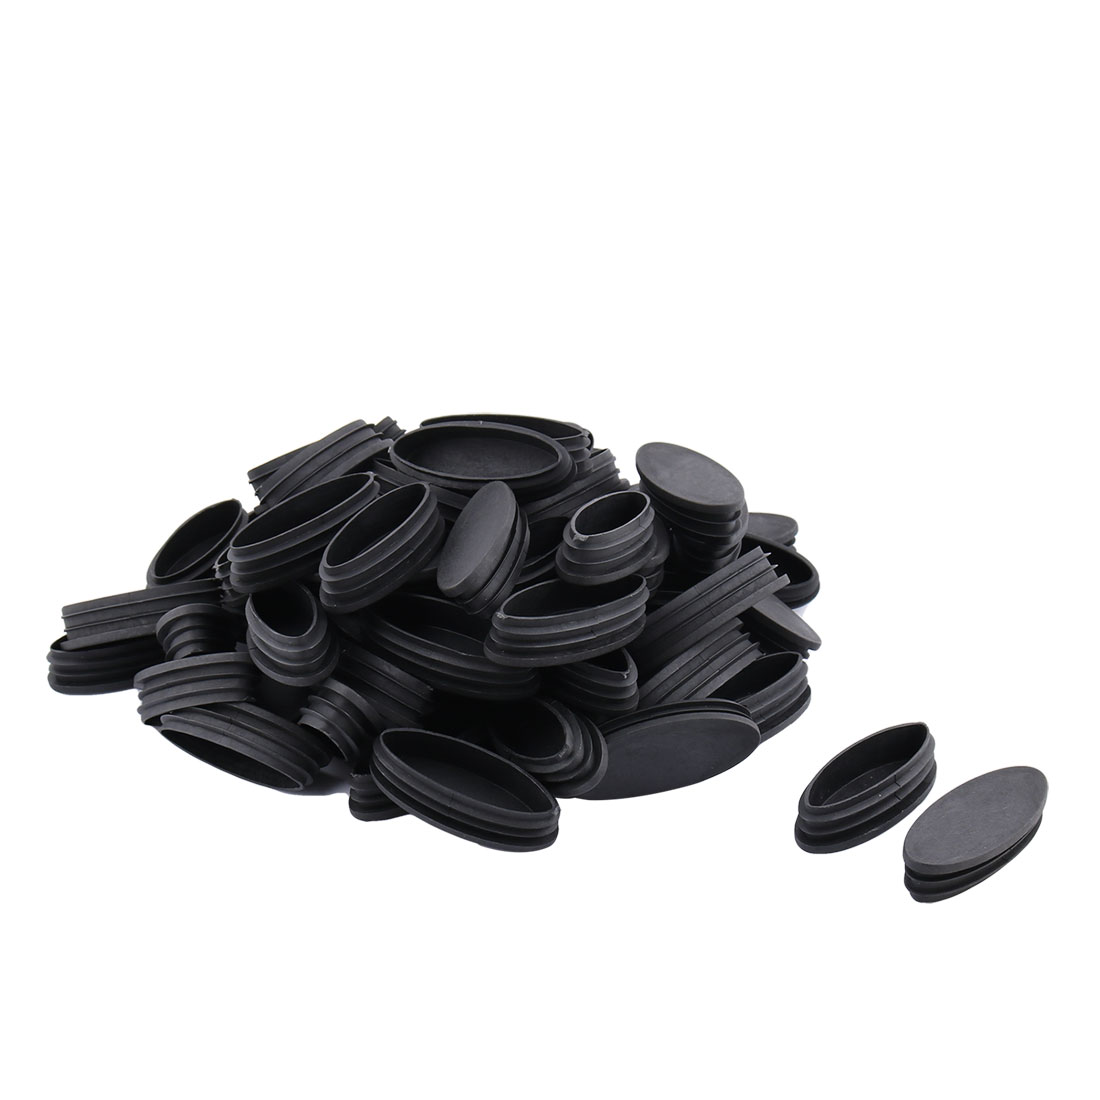 Furniture Plastic Olive Shaped End Cap Tube Insert Black 35mm x 80mm 70pcs